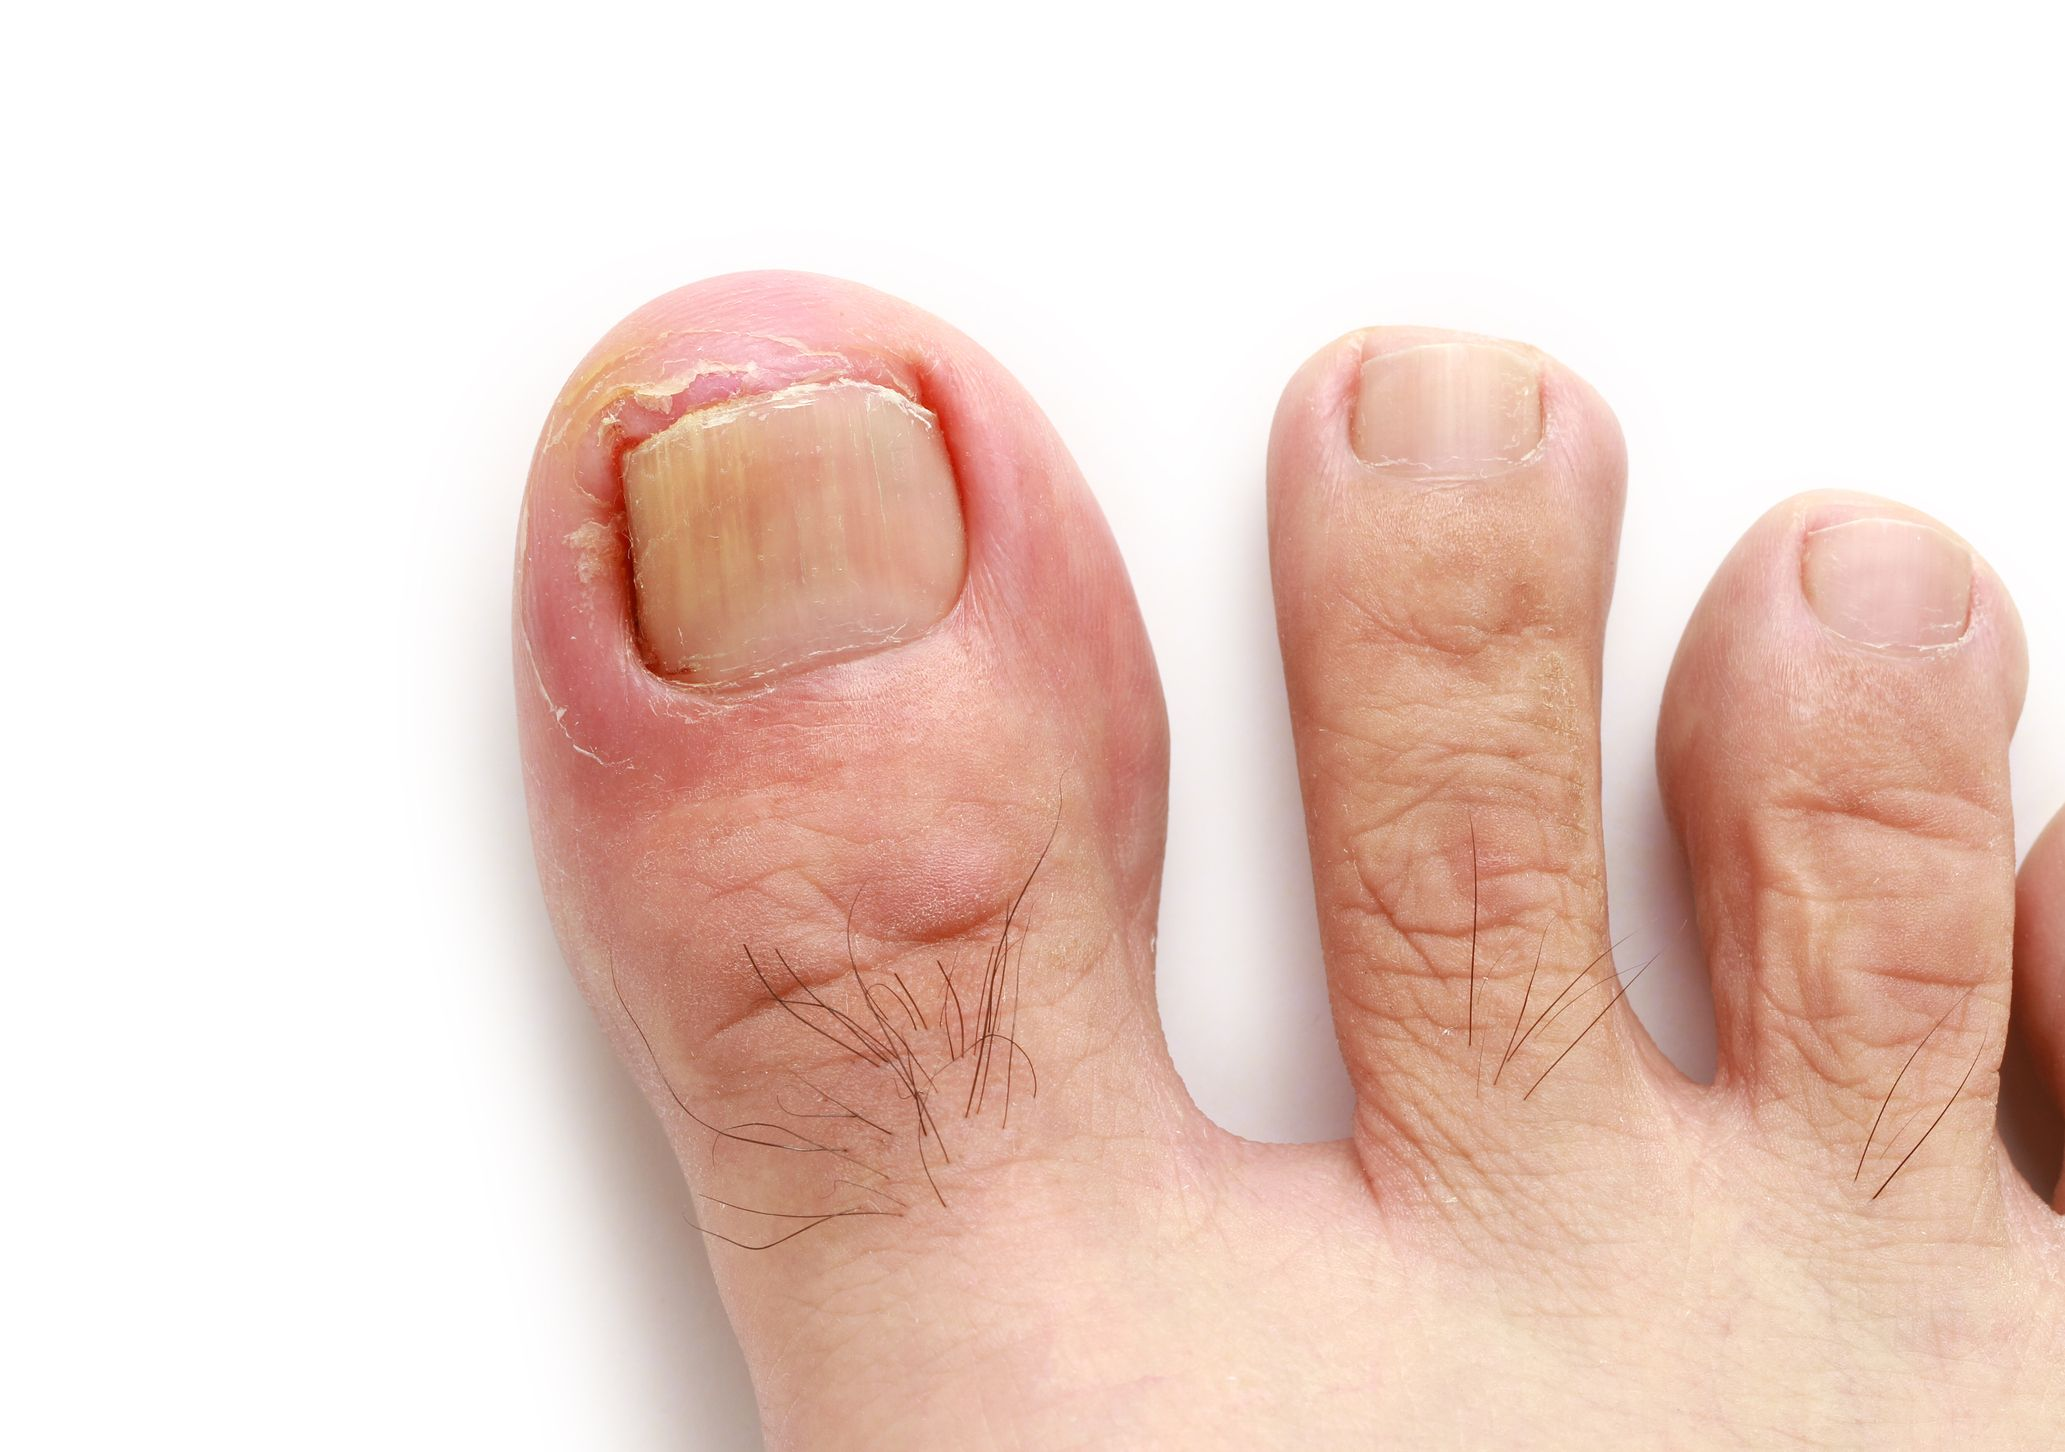 How to Get Rid of an Ingrown Toenail - How to Fix Ingrown Toenail